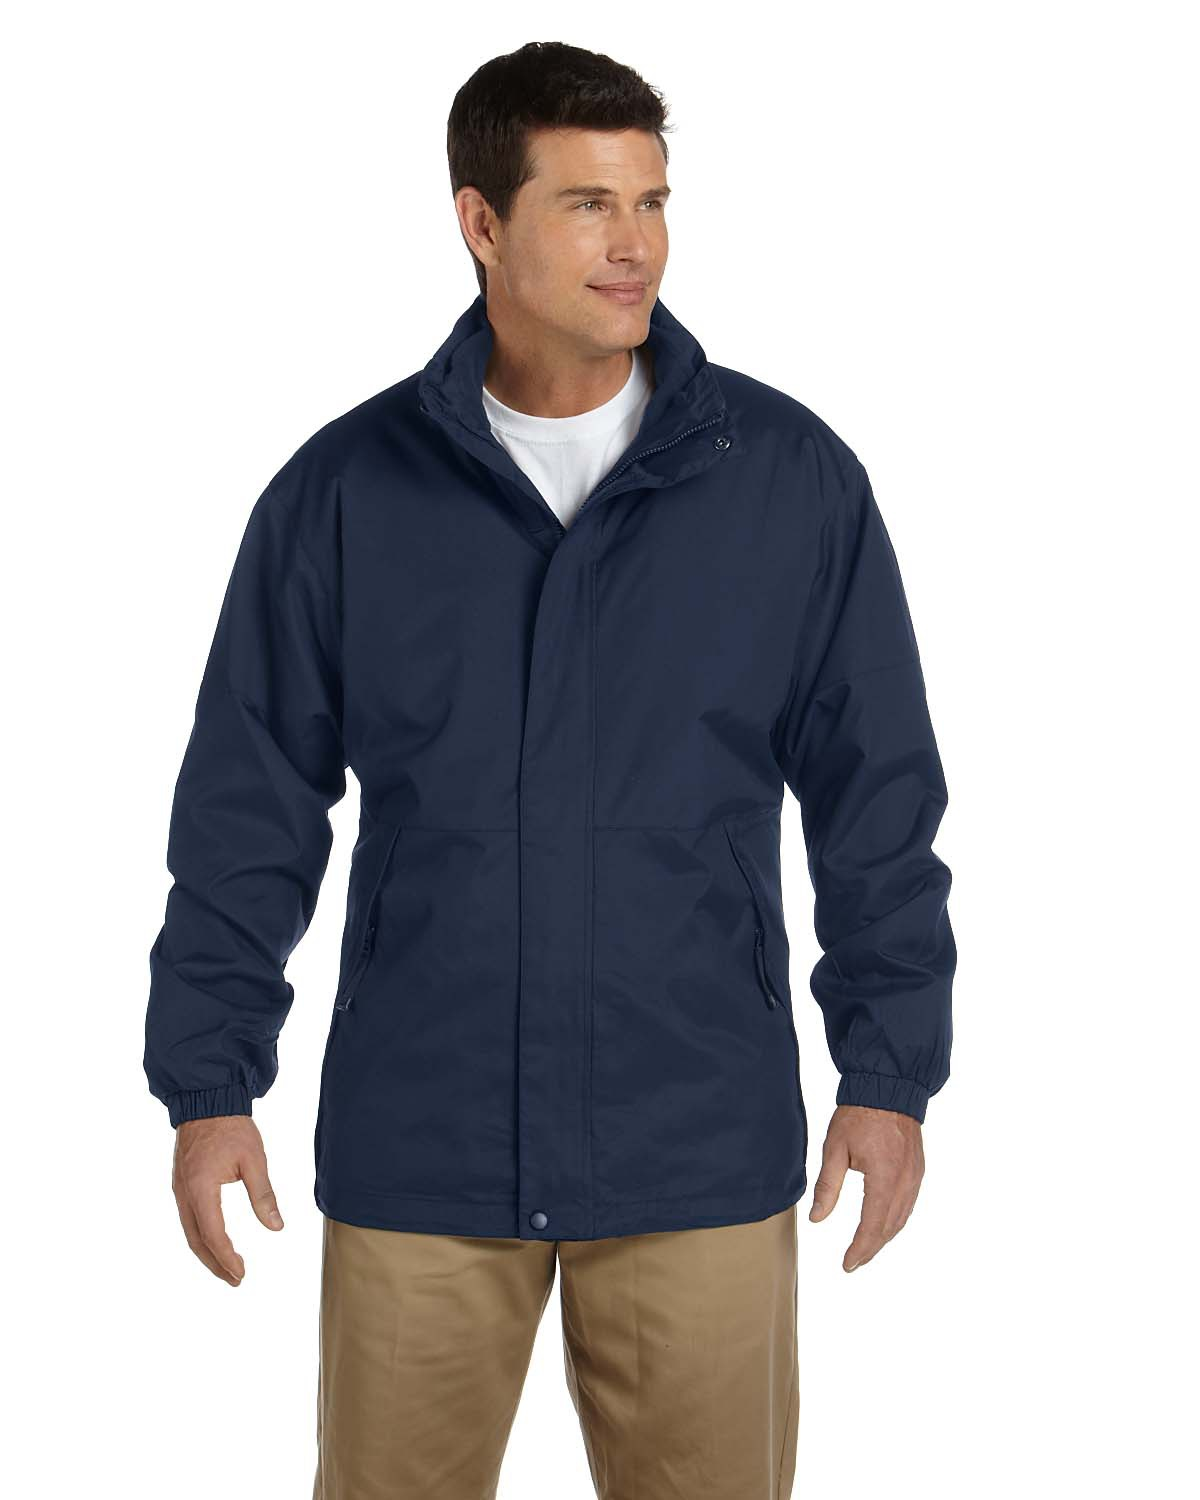 Devon & Jones D981 3-in-1 Systems Jacket